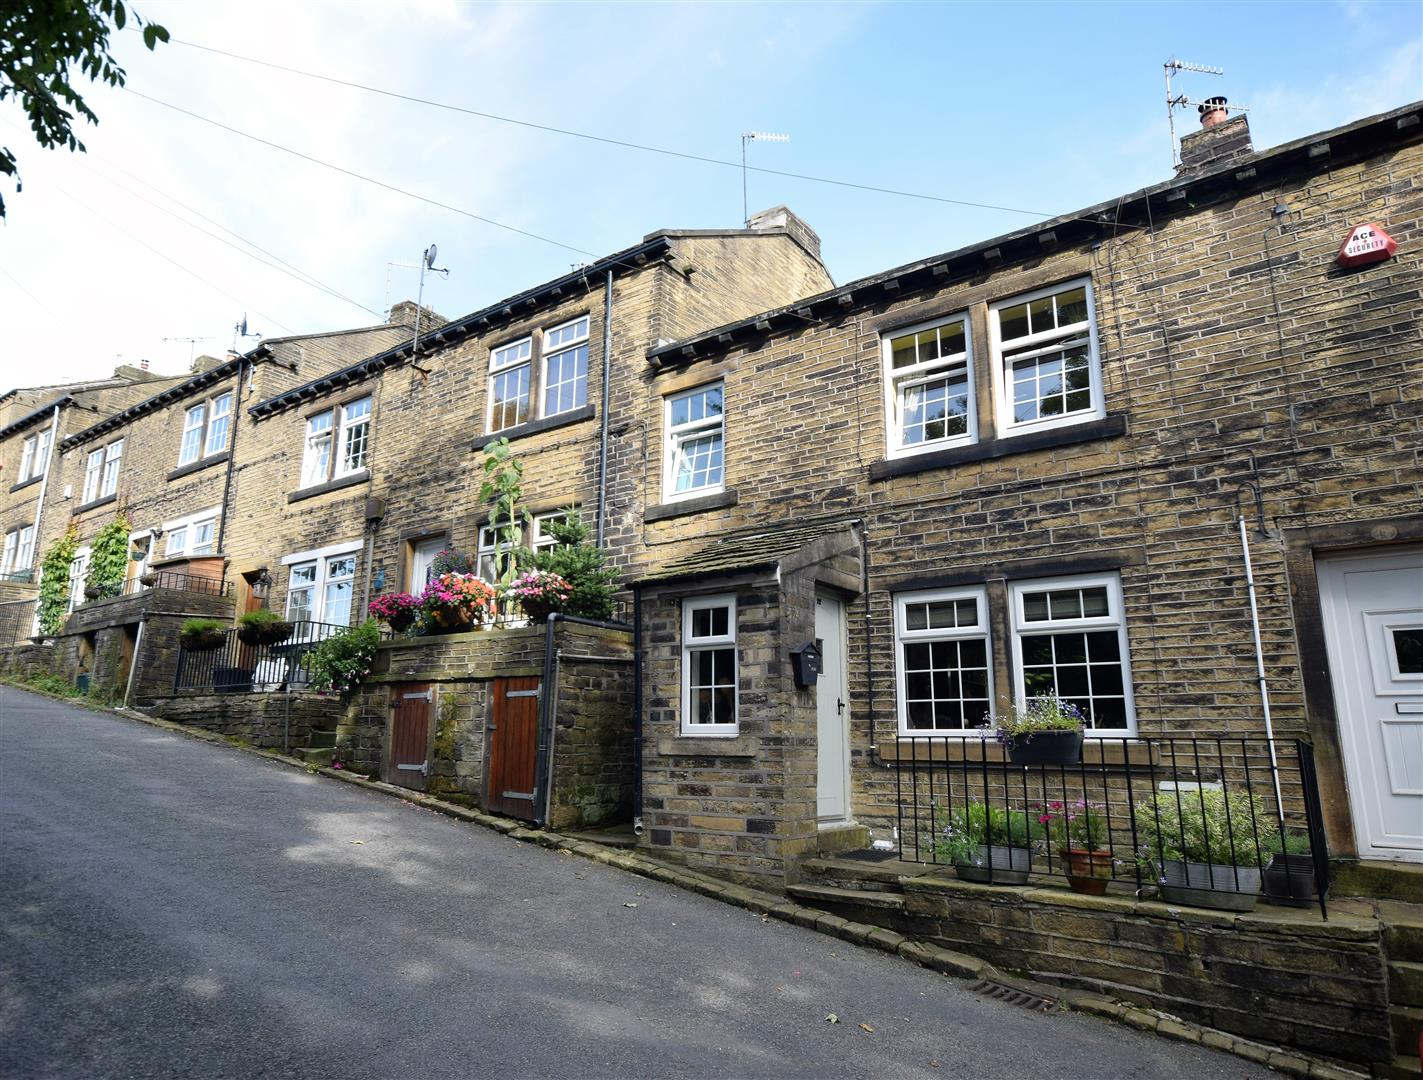 Apple House Terrace, Luddenden, Halifax, HX2 6PU